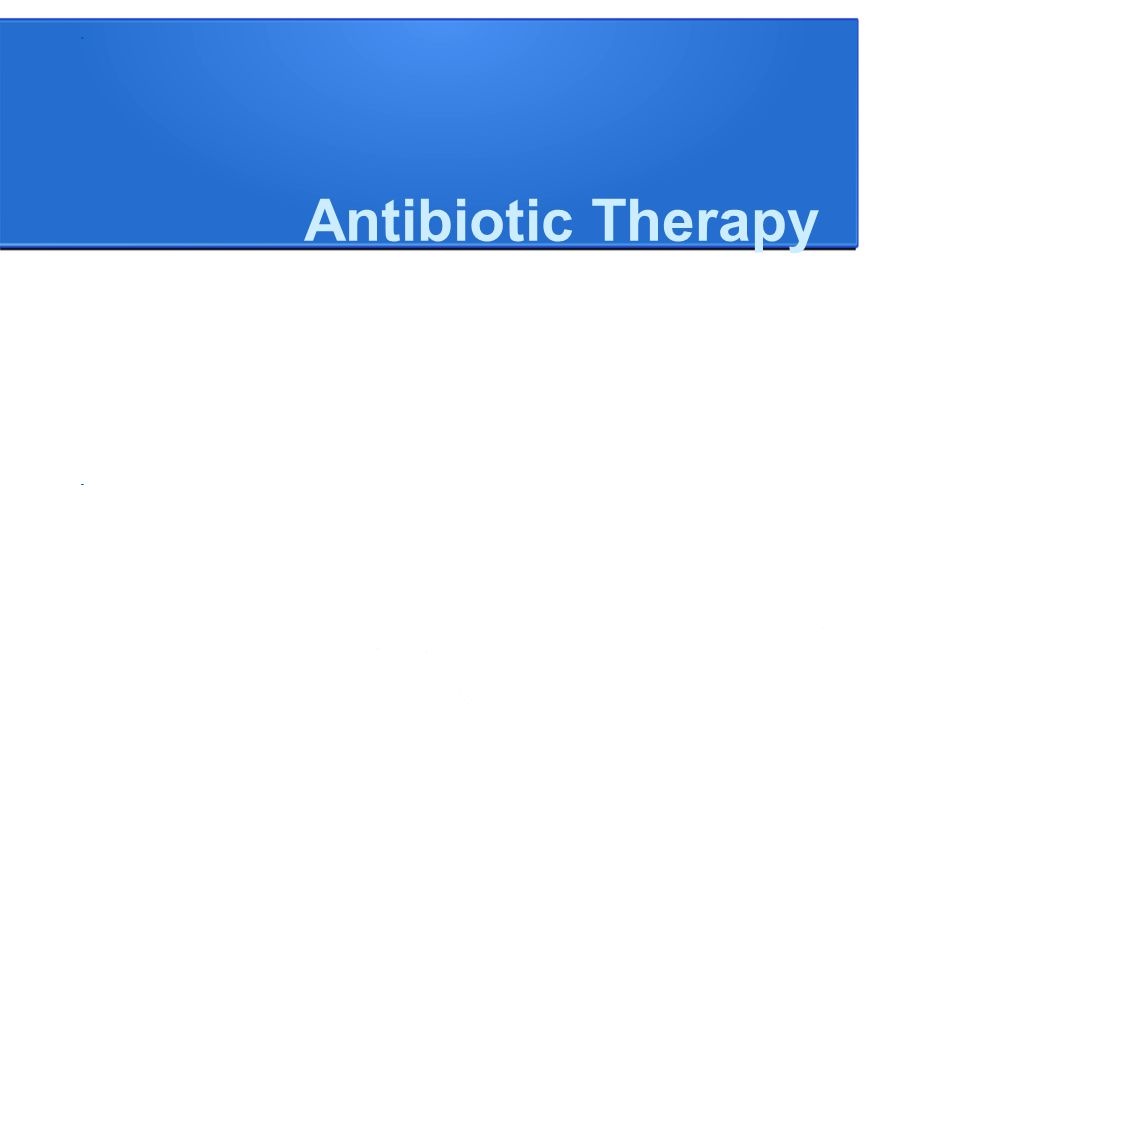 Antibiotic Therapy lOne or more drugs active against likely bacterial or fungal pathogens. lConsider microorganism susceptibility patterns in the comm